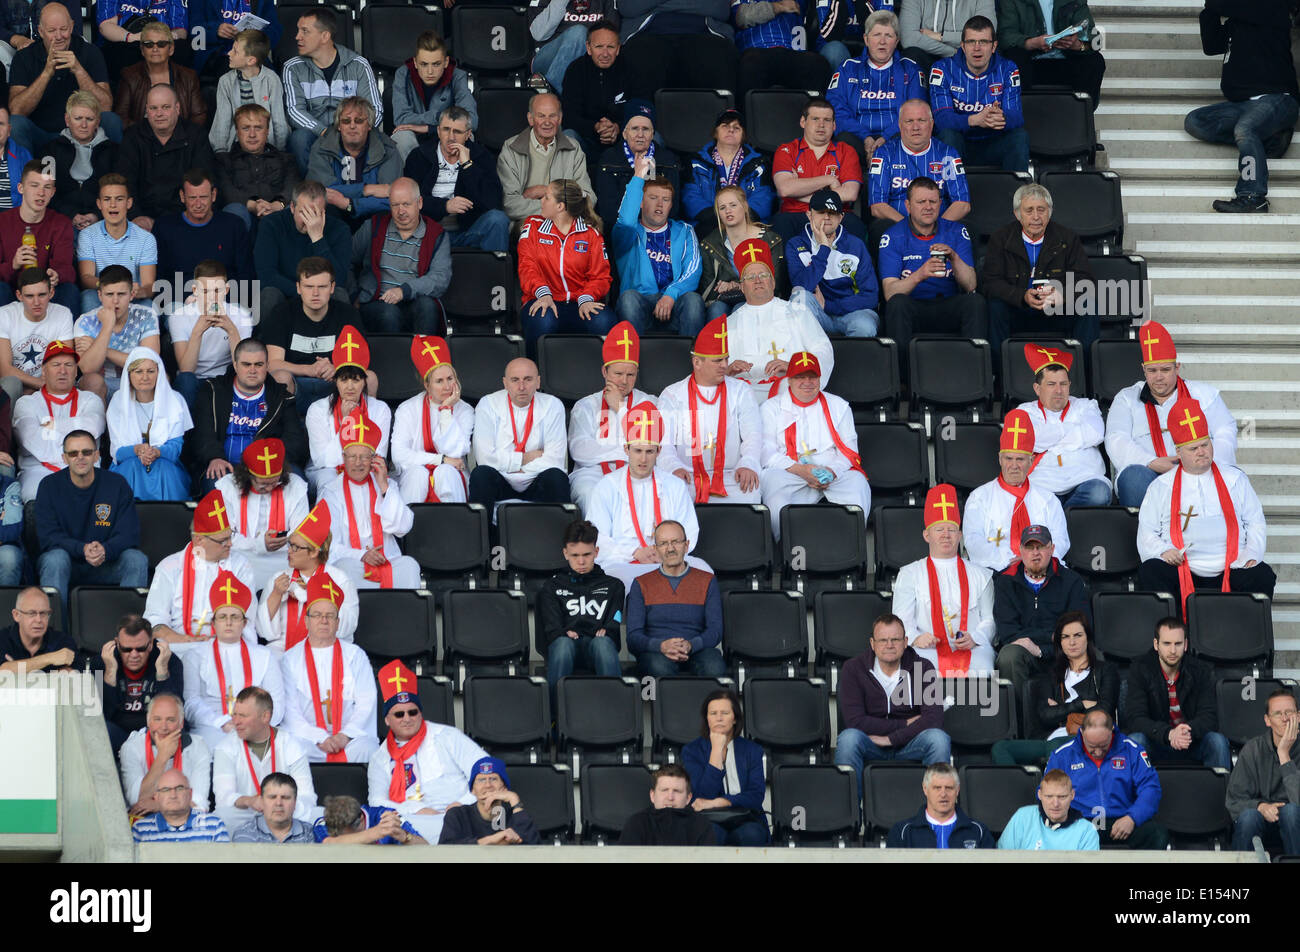 Carlisle United Football Club supporters fans dressed as priests in religious fancy dress costumes as they watch get relegated - Stock Image